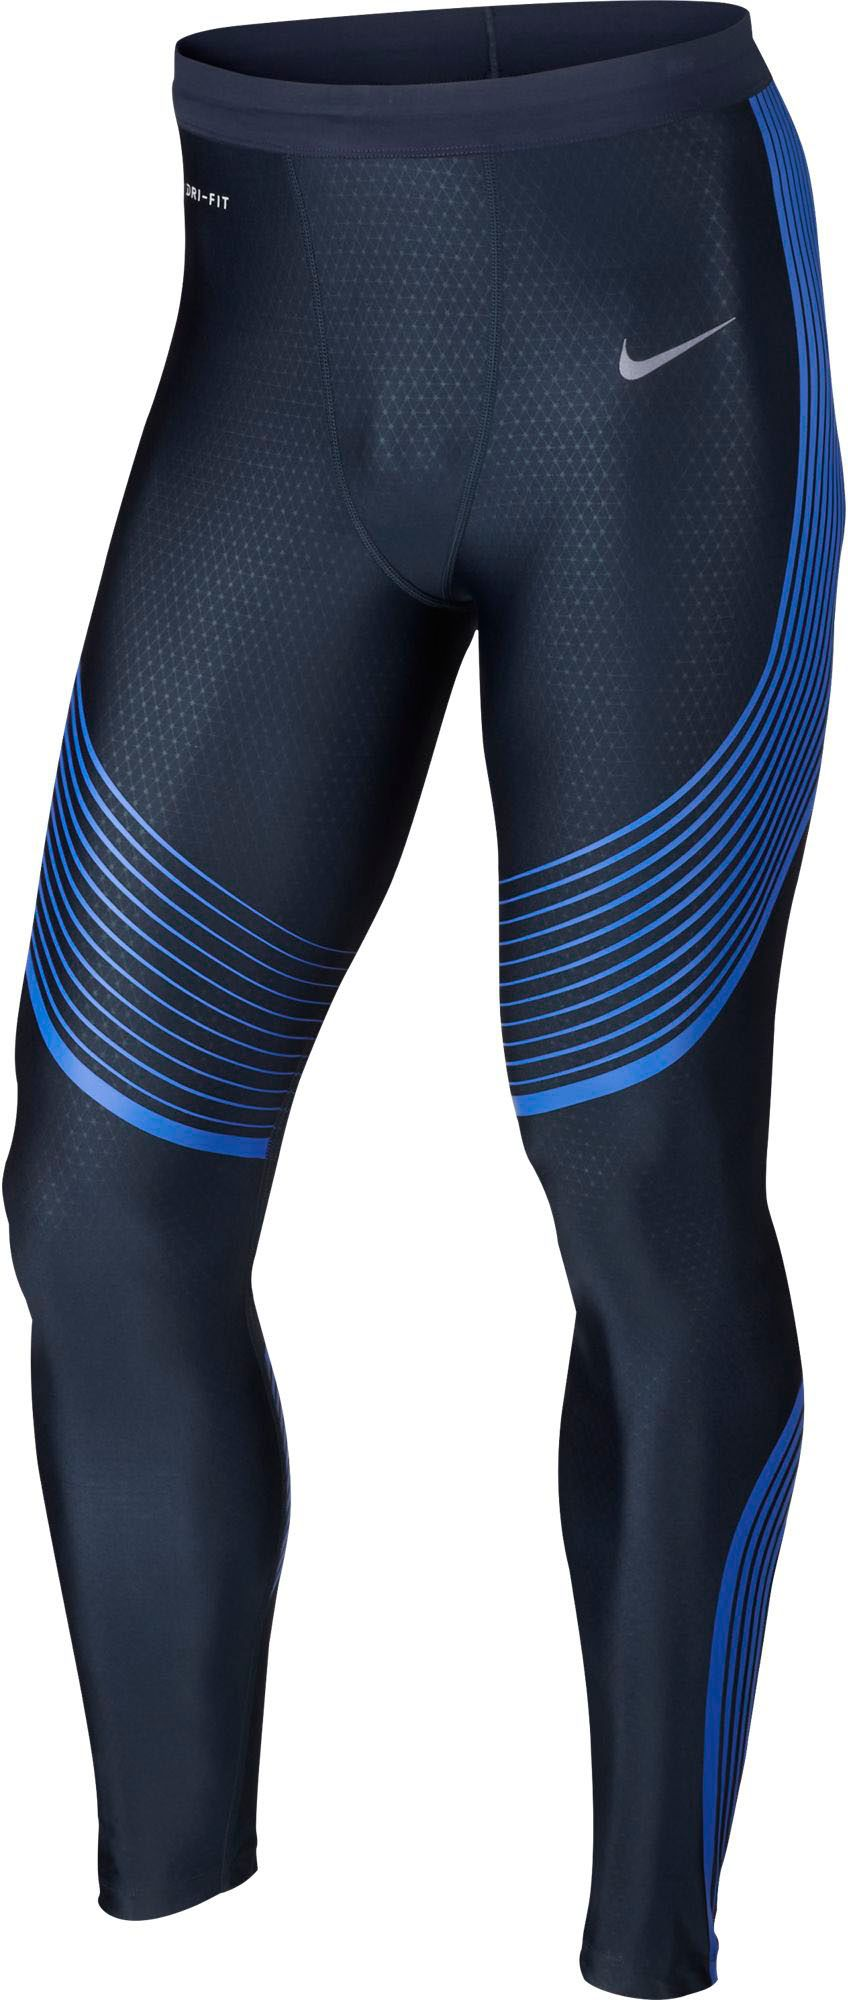 Nike Men's Power Speed Running Tights | DICK'S Sporting Goods